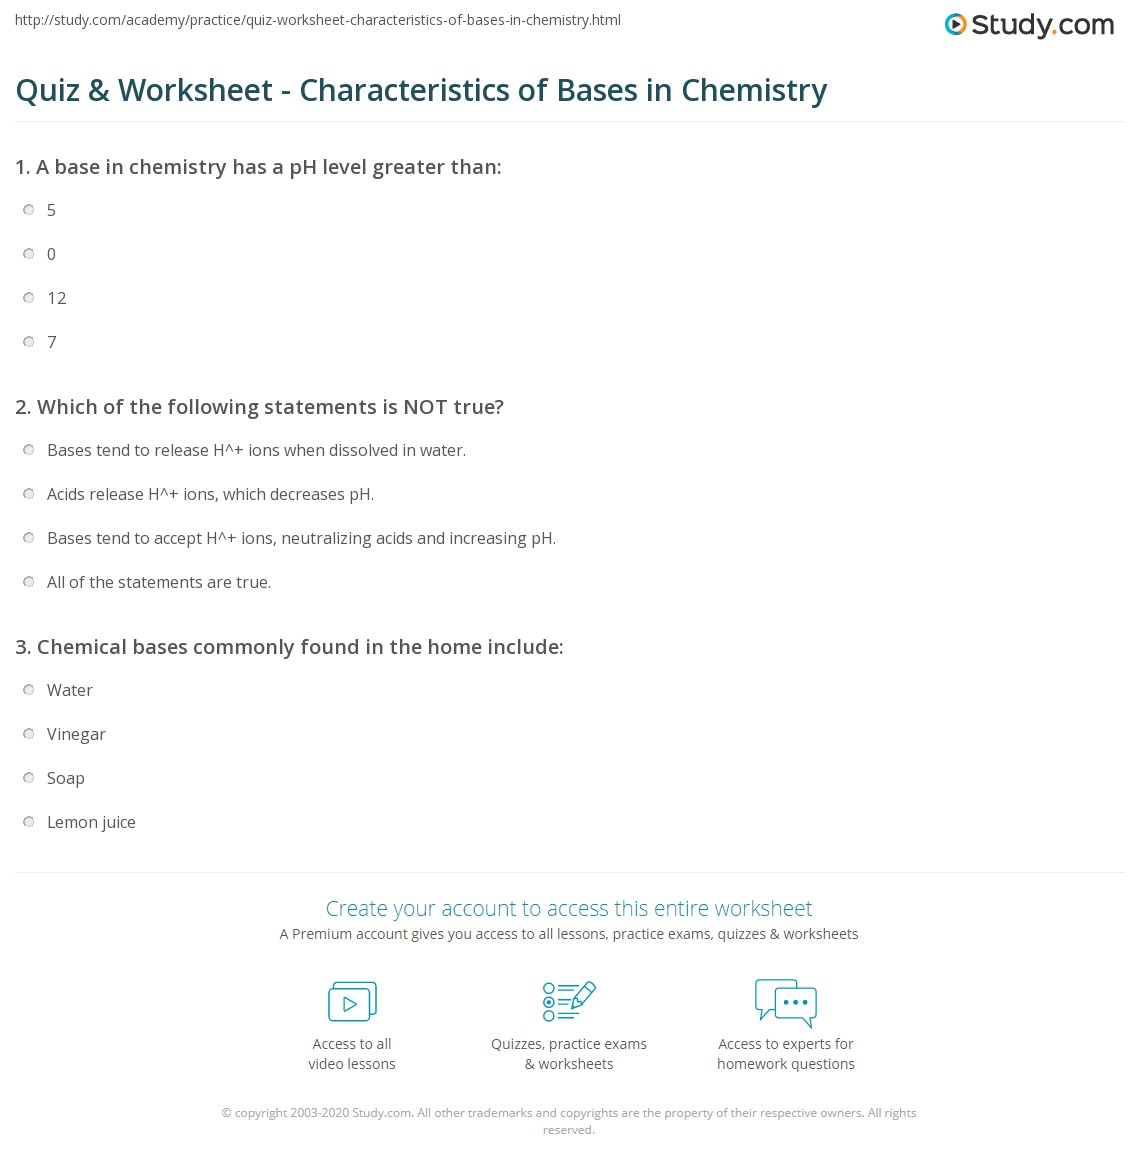 Quiz & Worksheet - Characteristics of Bases in Chemistry | Study.com